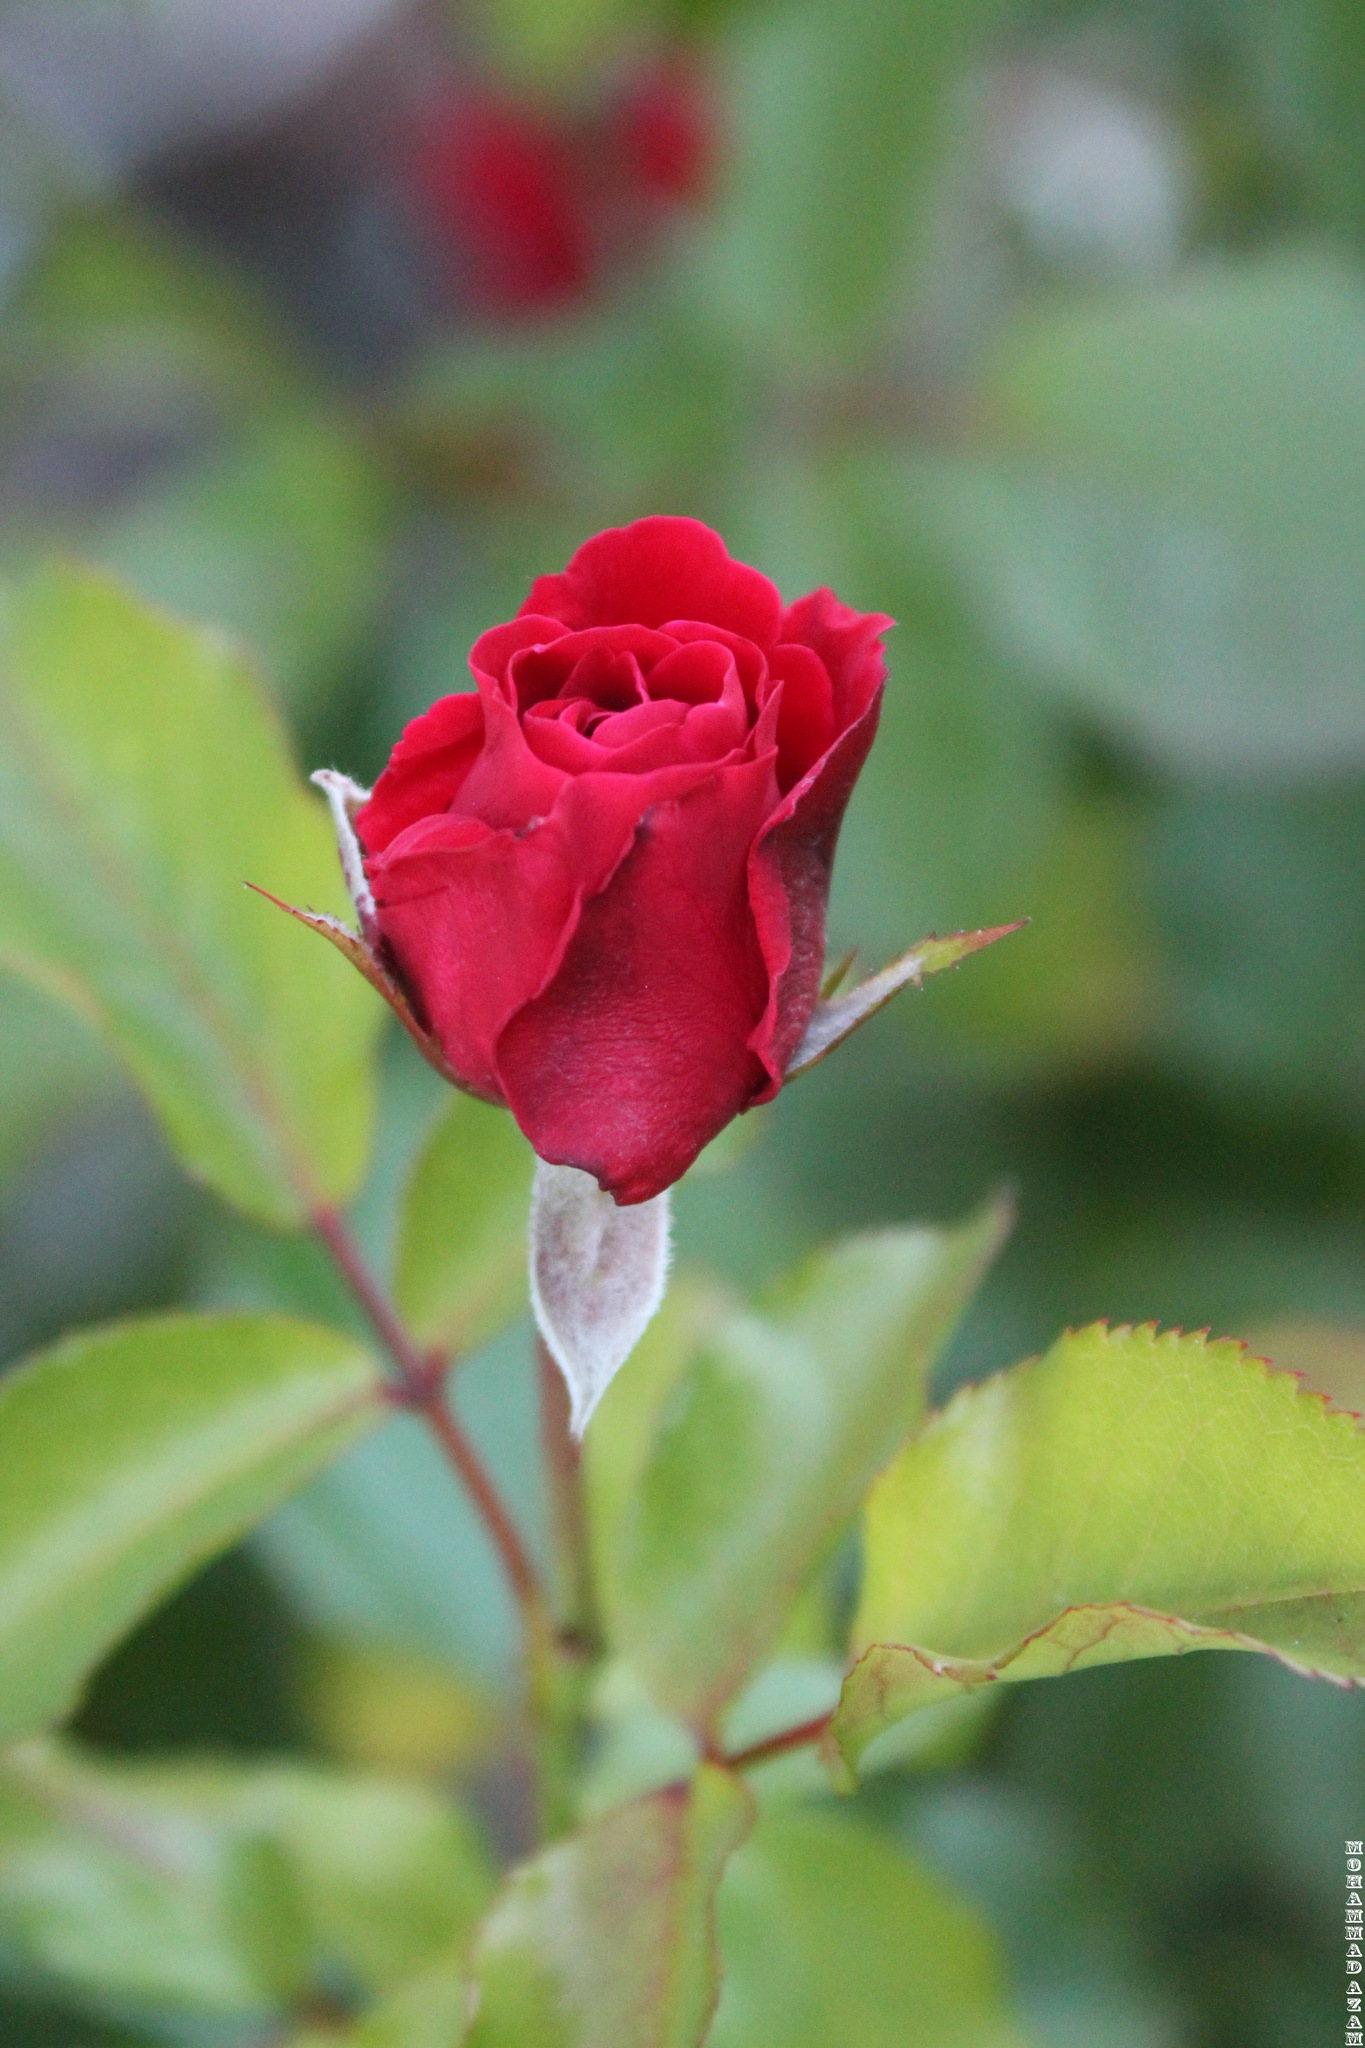 Red Rose 401 by Mohammad Azam